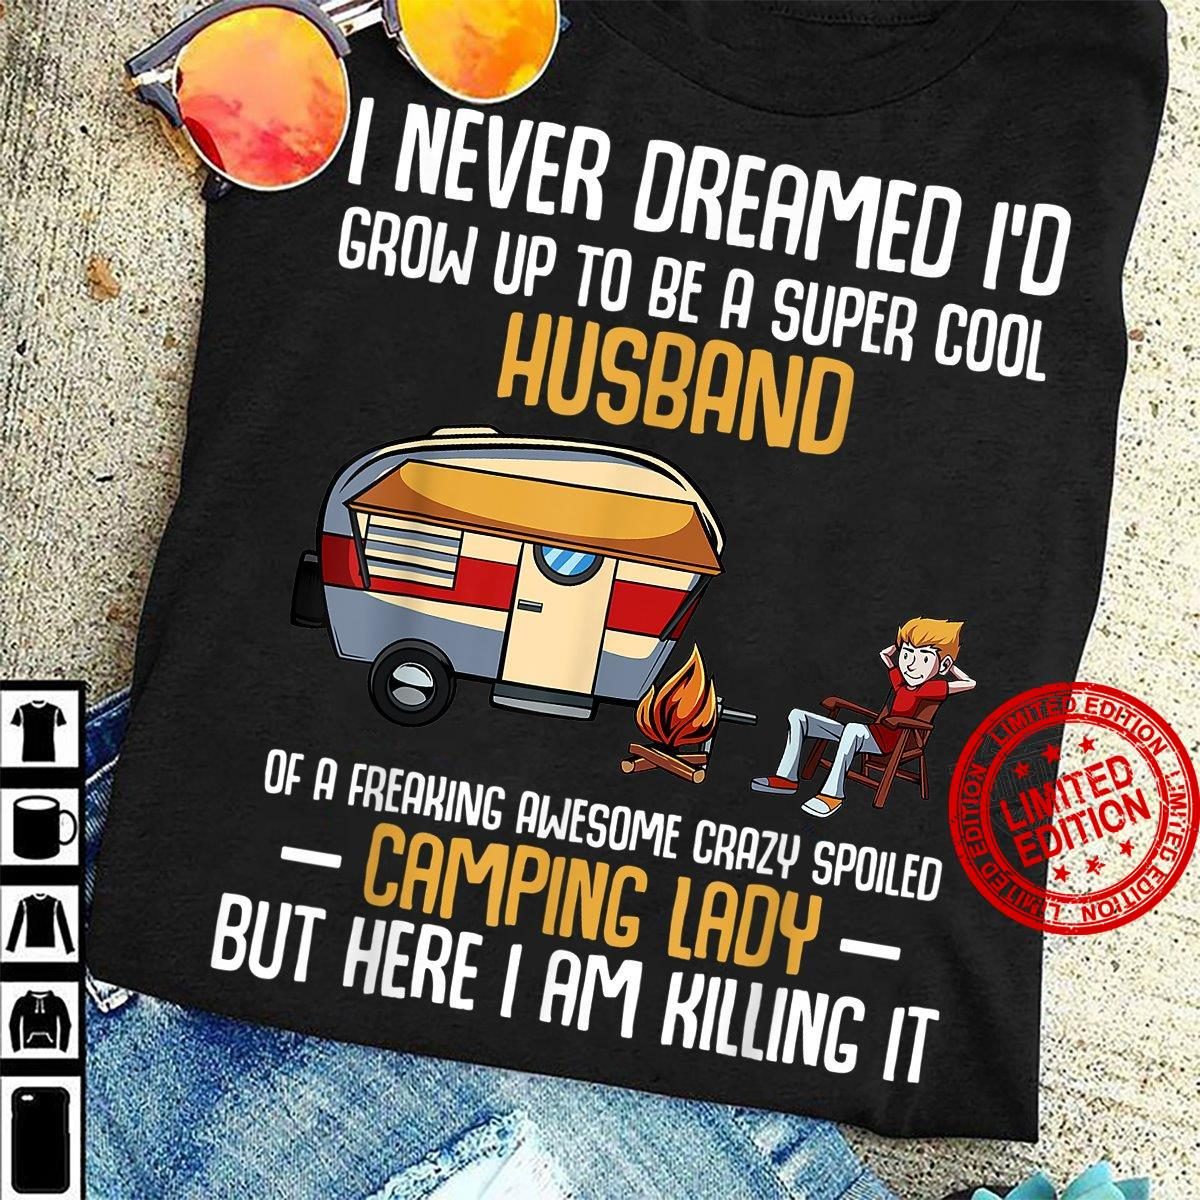 I Never Dreamed I'd Grow Up To Be A Super Cool Husband Of A Freaking Awesome Crazy Spoiled Camping Lady But Here I Am Killing It Shirt